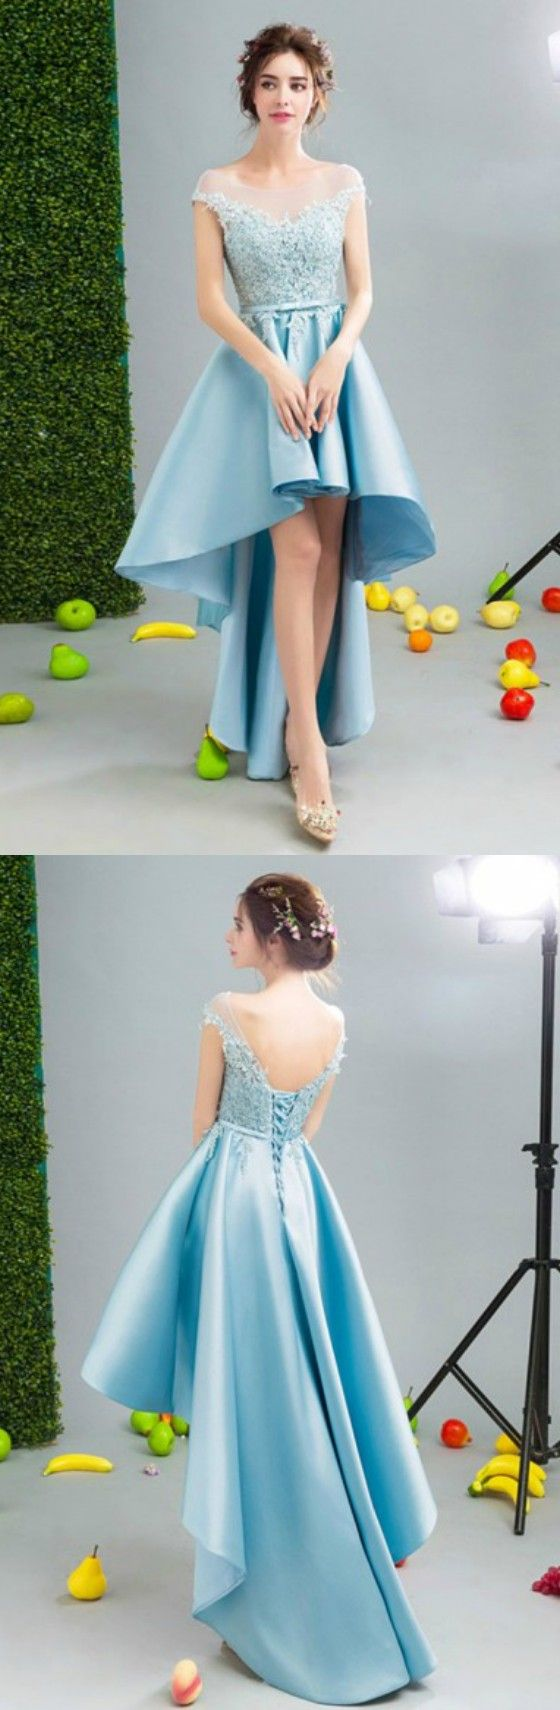 Blue Ball-gown Scoop Neck High Low Satin Formal Dress Homecoming Dress Prom Dress With Appliques Lace